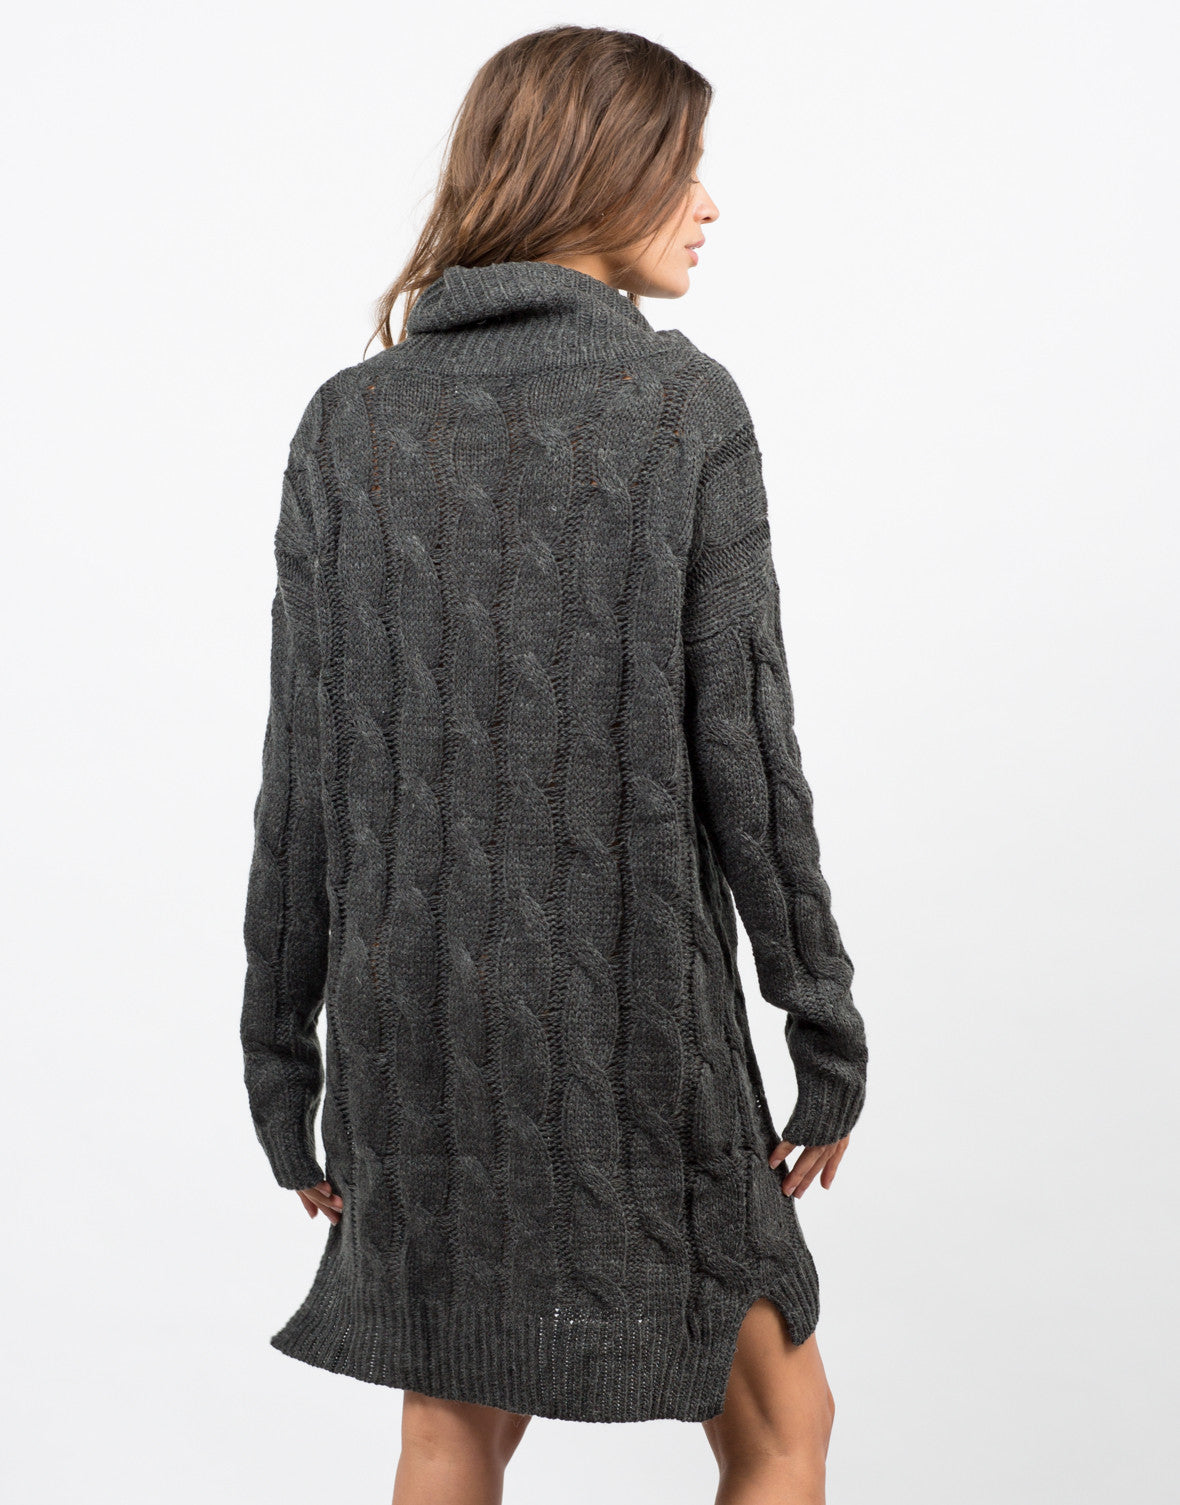 Back View of Chunky Turtleneck Sweater Dress